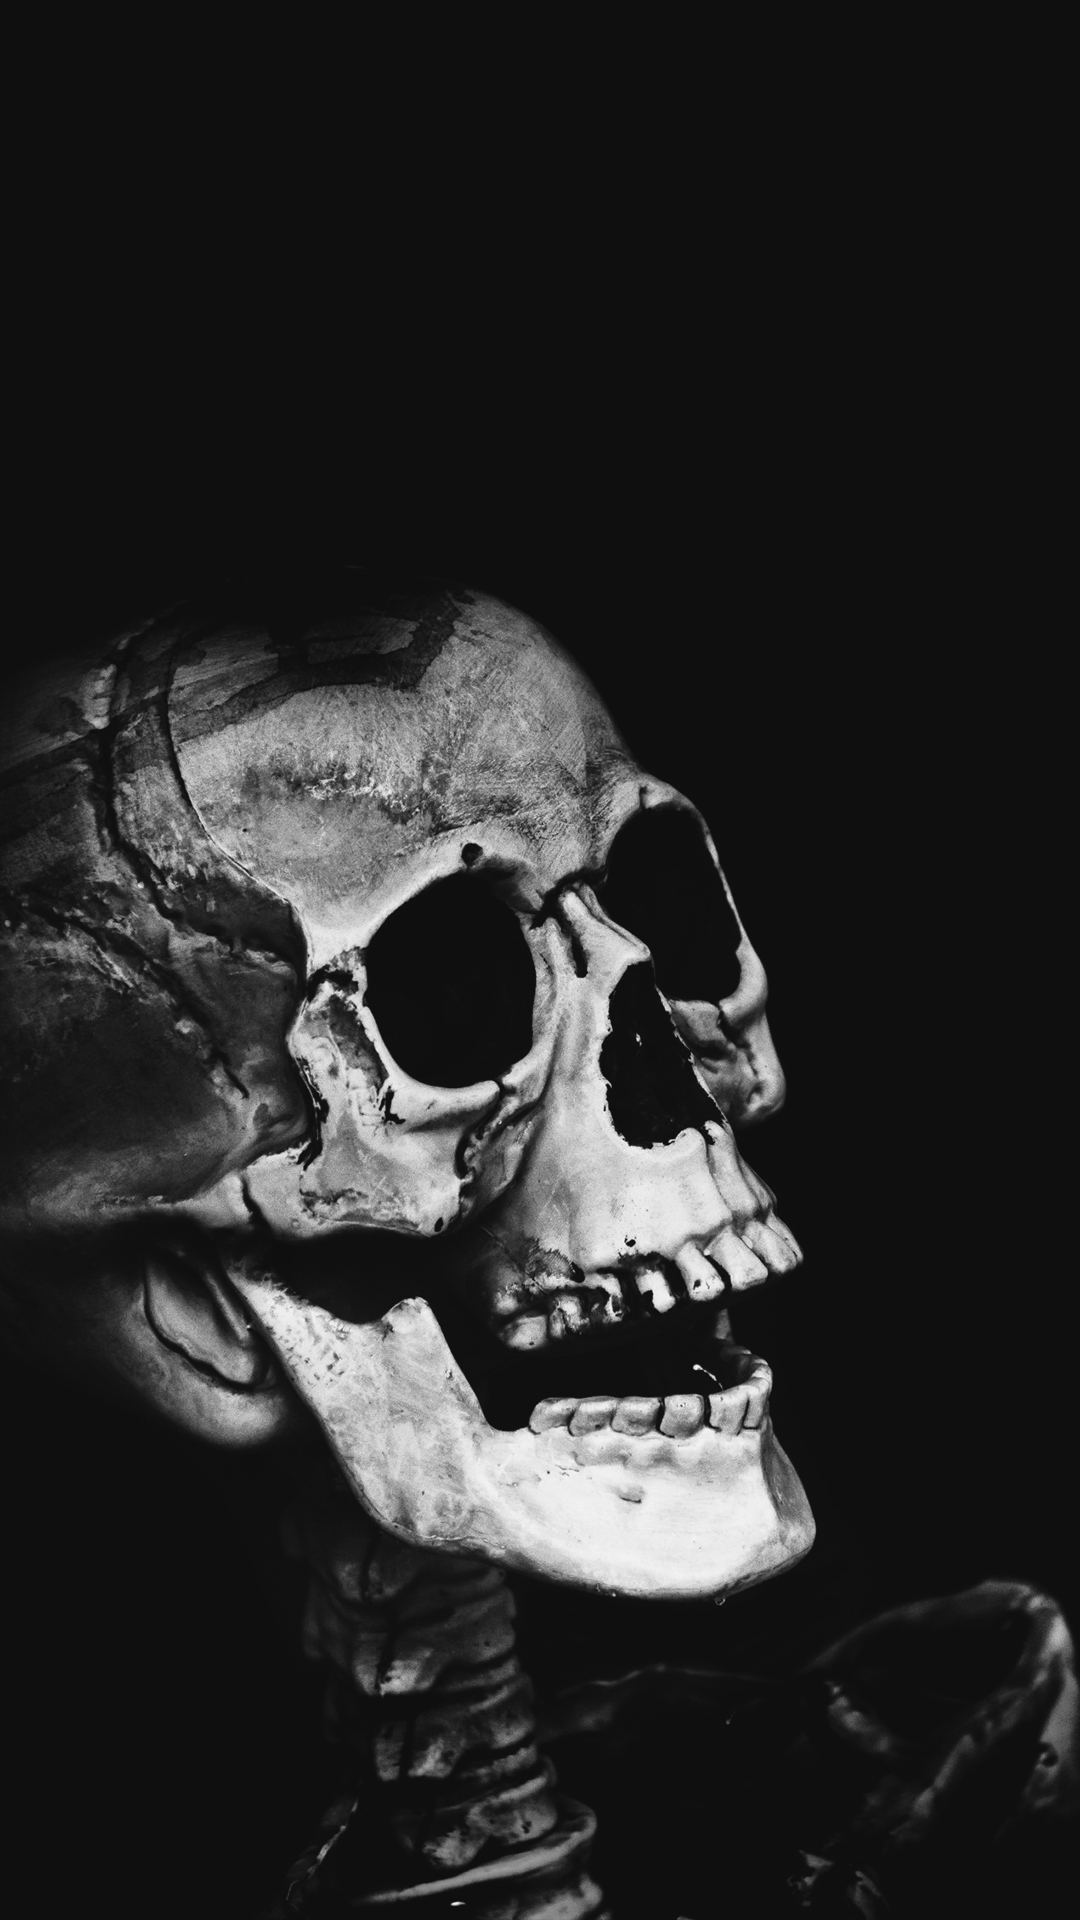 pirate skull hd wallpaper for your android phone